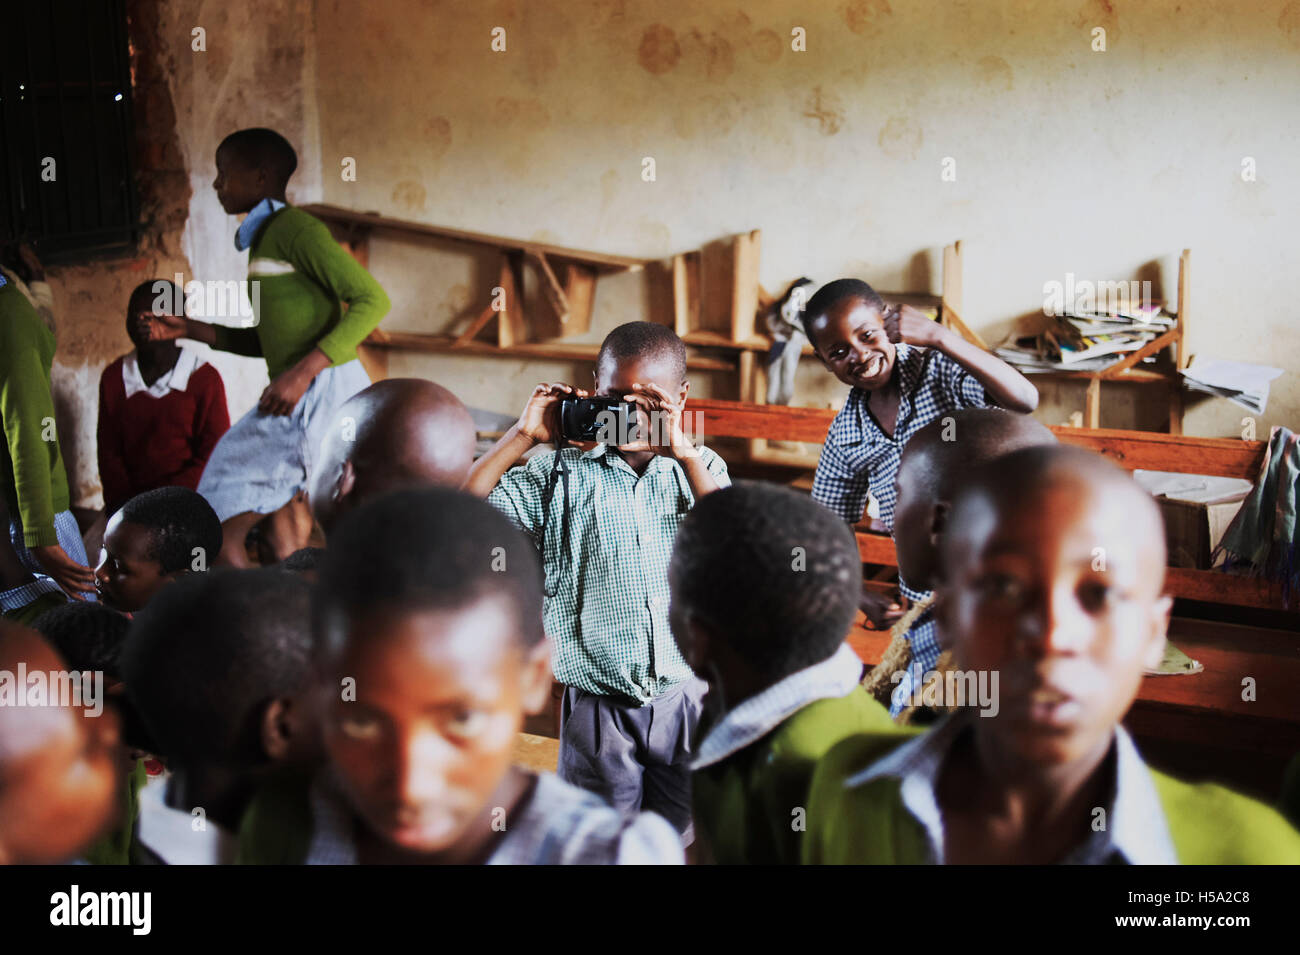 child in centre of picture is holding a camera taking a photograph during morning assembly in rural Uganda - Stock Image